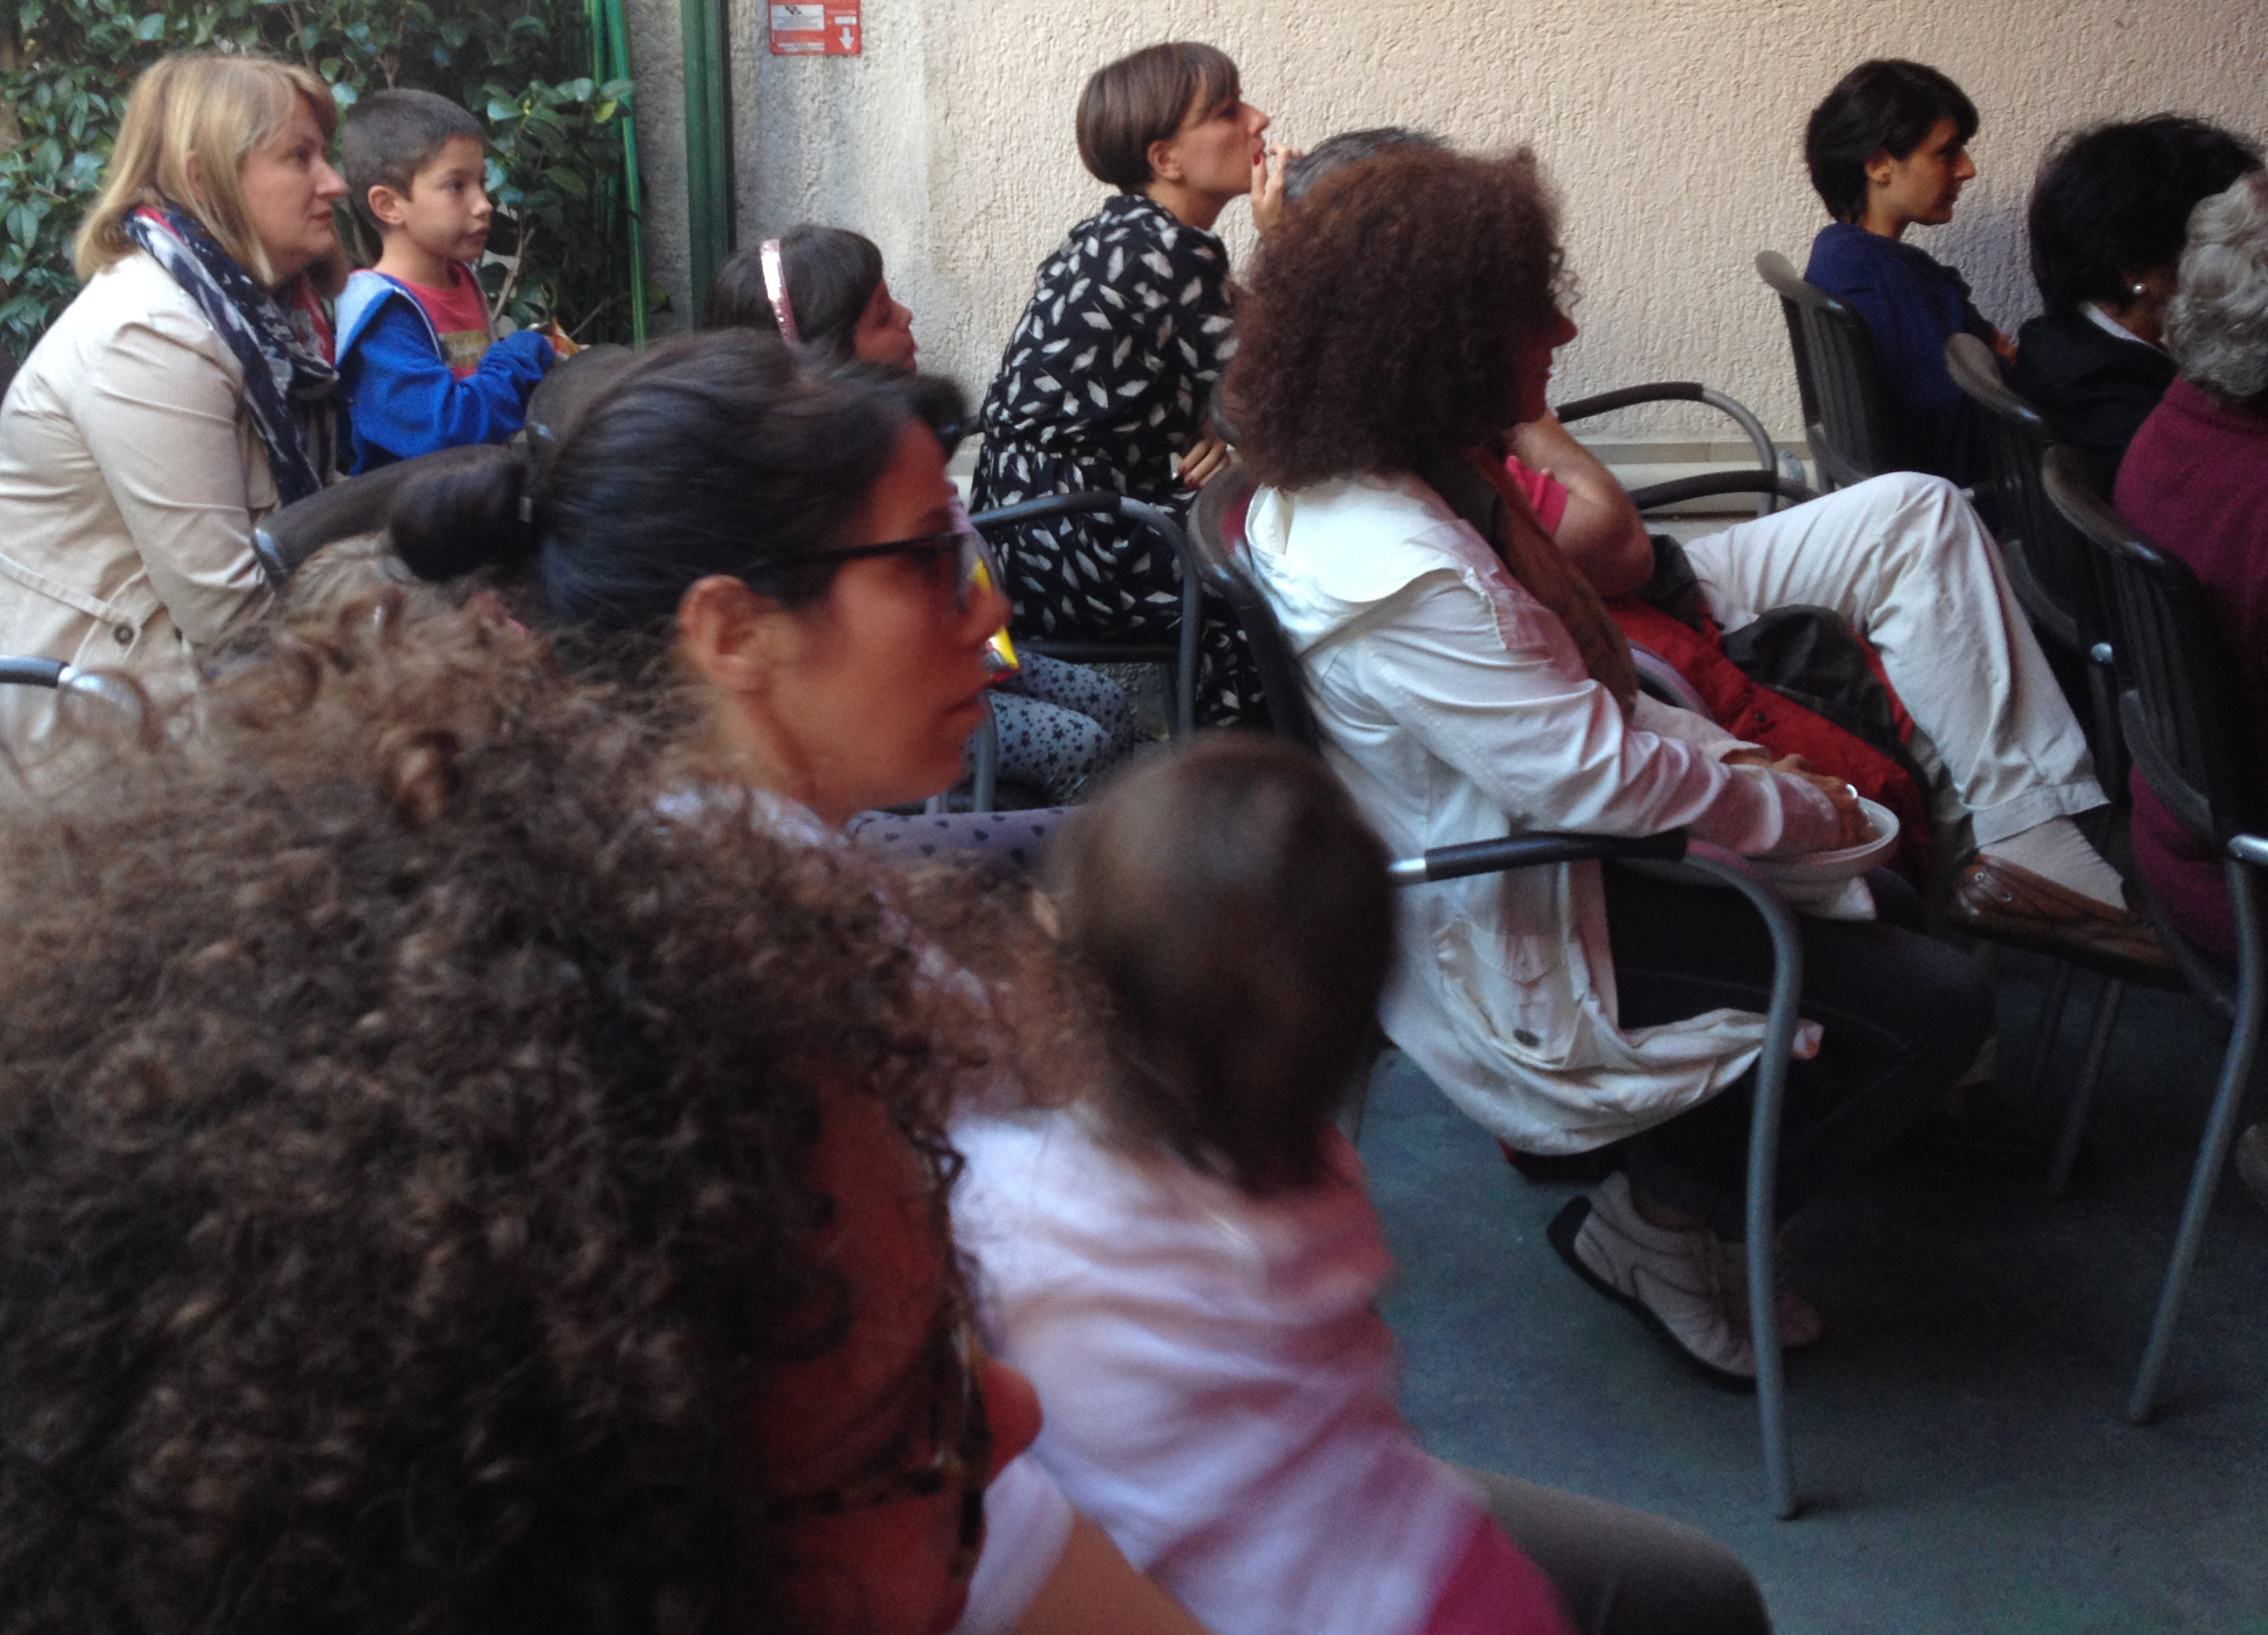 images from the event: screening of 'Cartographers' by Valentina Bonizzi and excerpts from the research for 'Children of Molise' by Agapito Di Pilla with music by Kein, in Filignano. 17.09.2016 © Cultural Documents